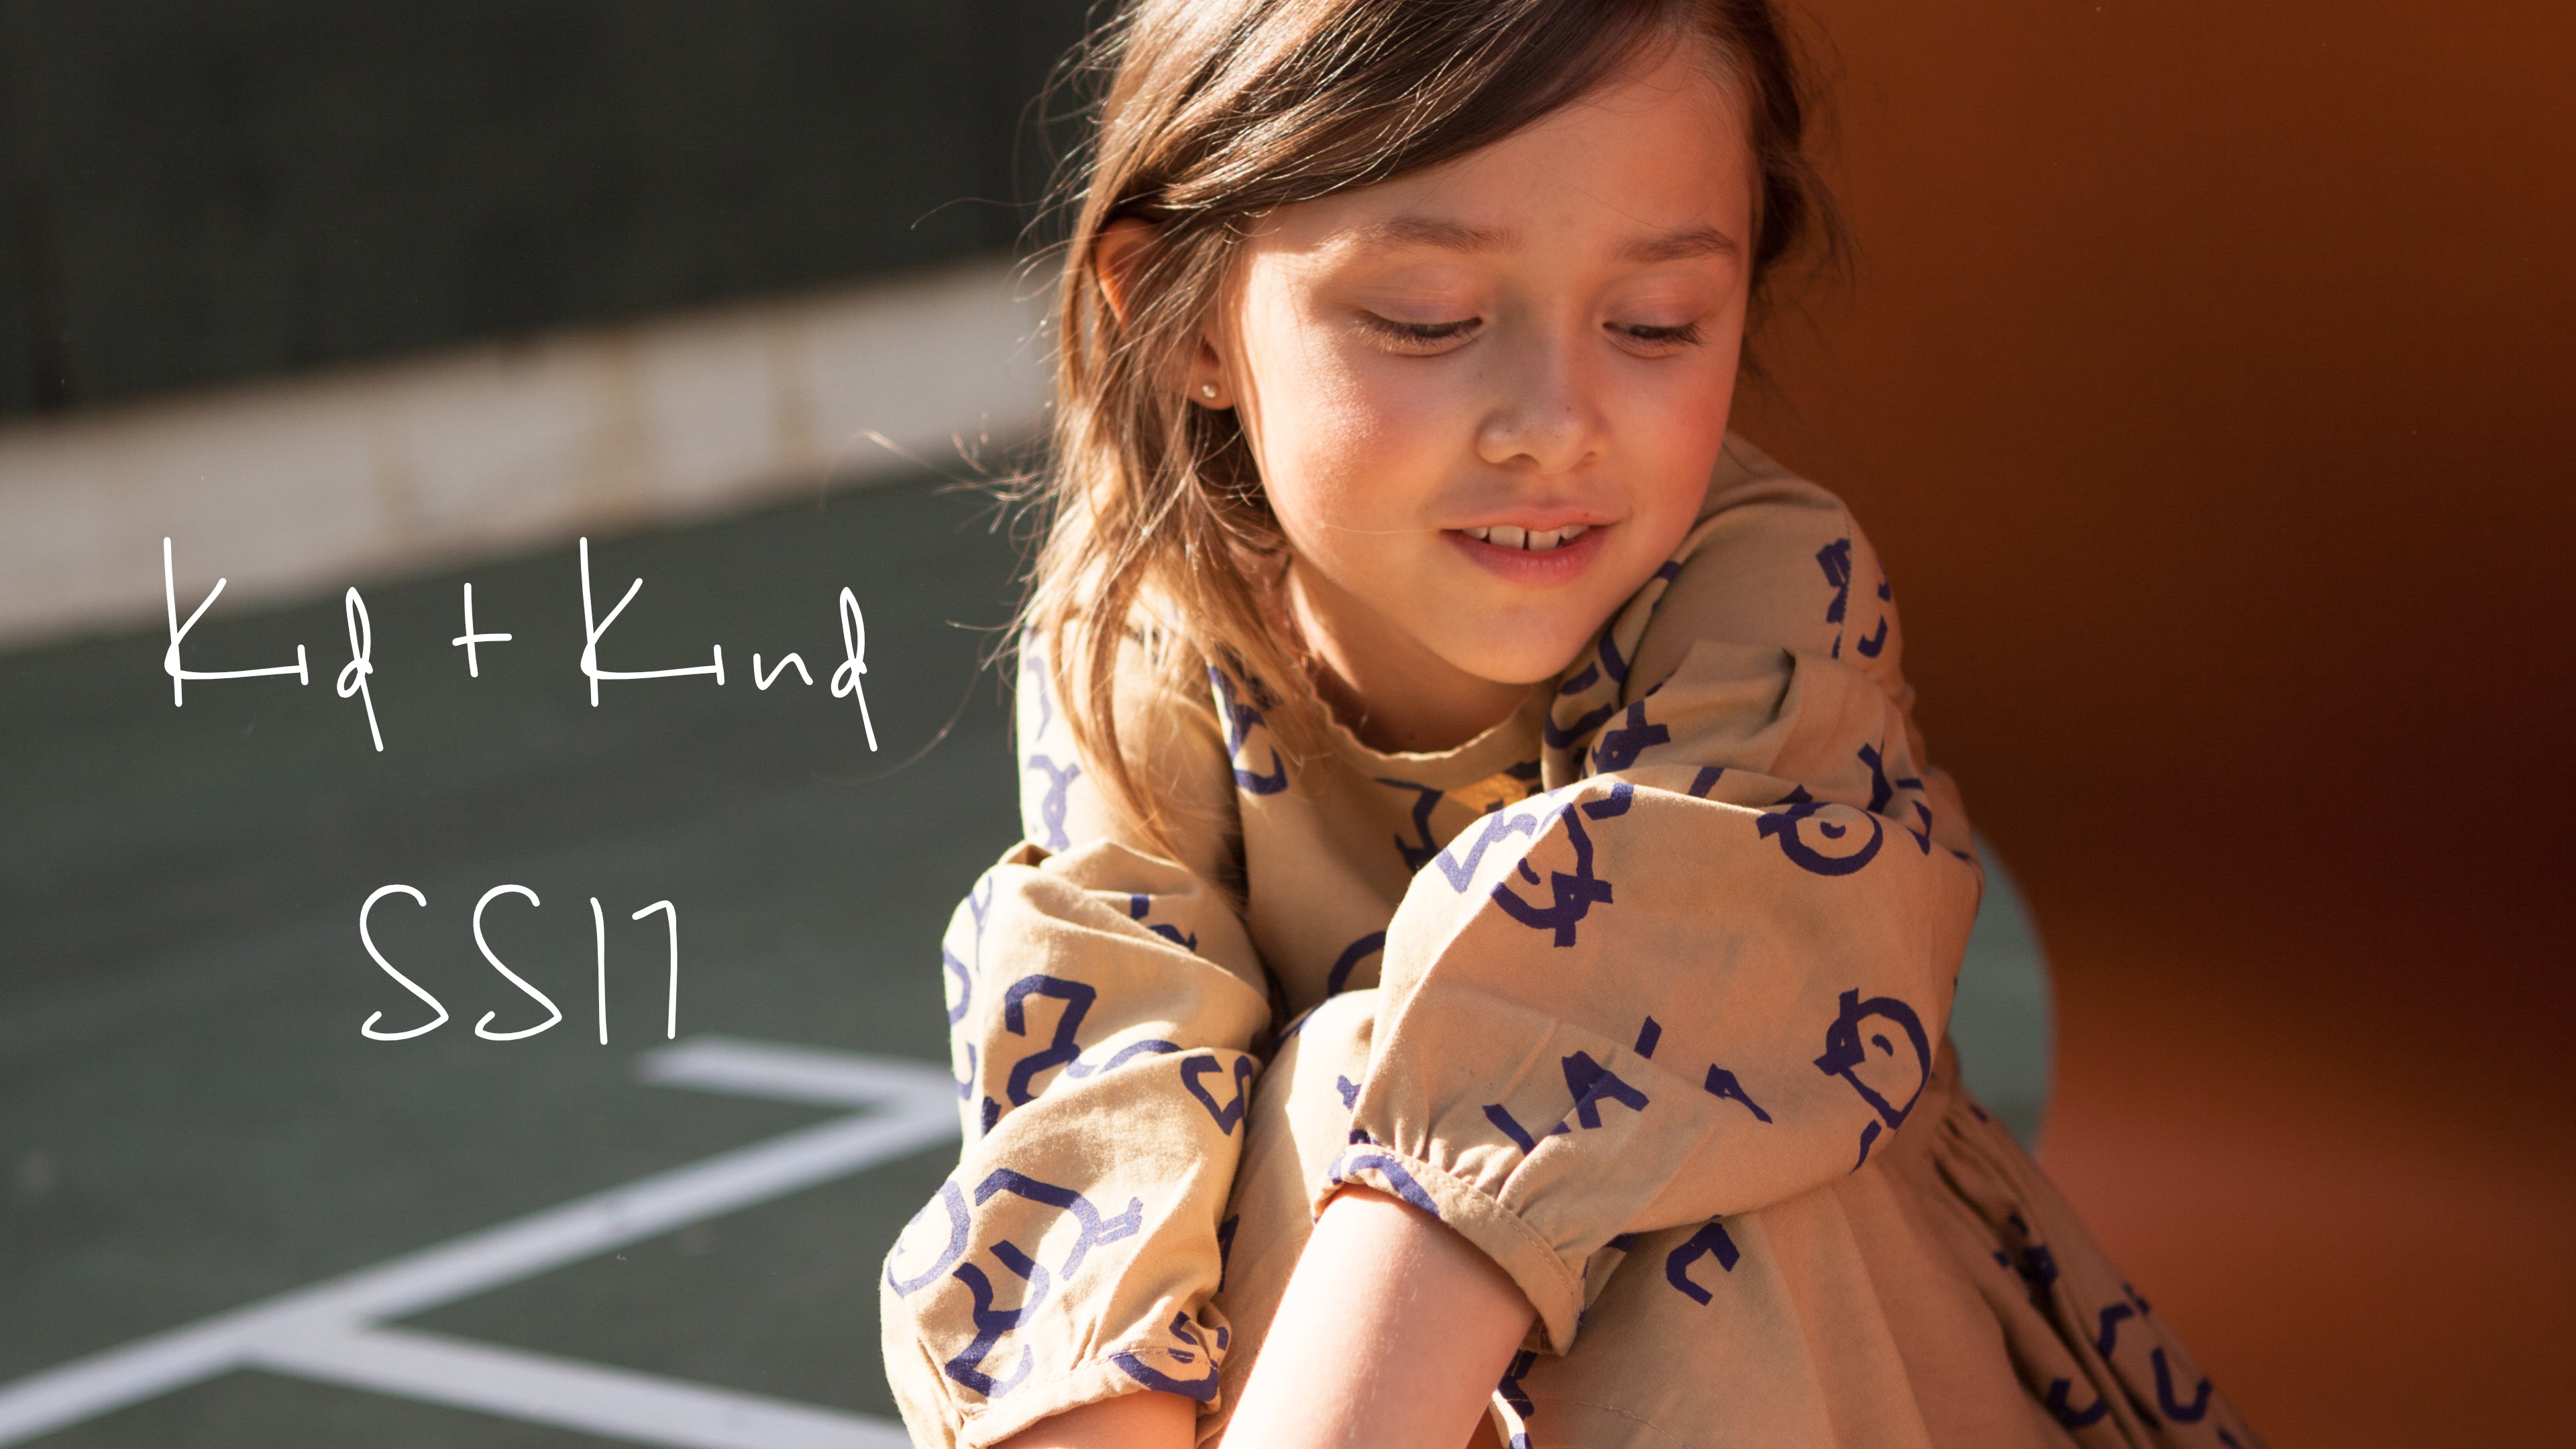 New season Kid + Kind for babies kids aged 0-5Y at MADEmini Store. NZ Childrens wear boutique